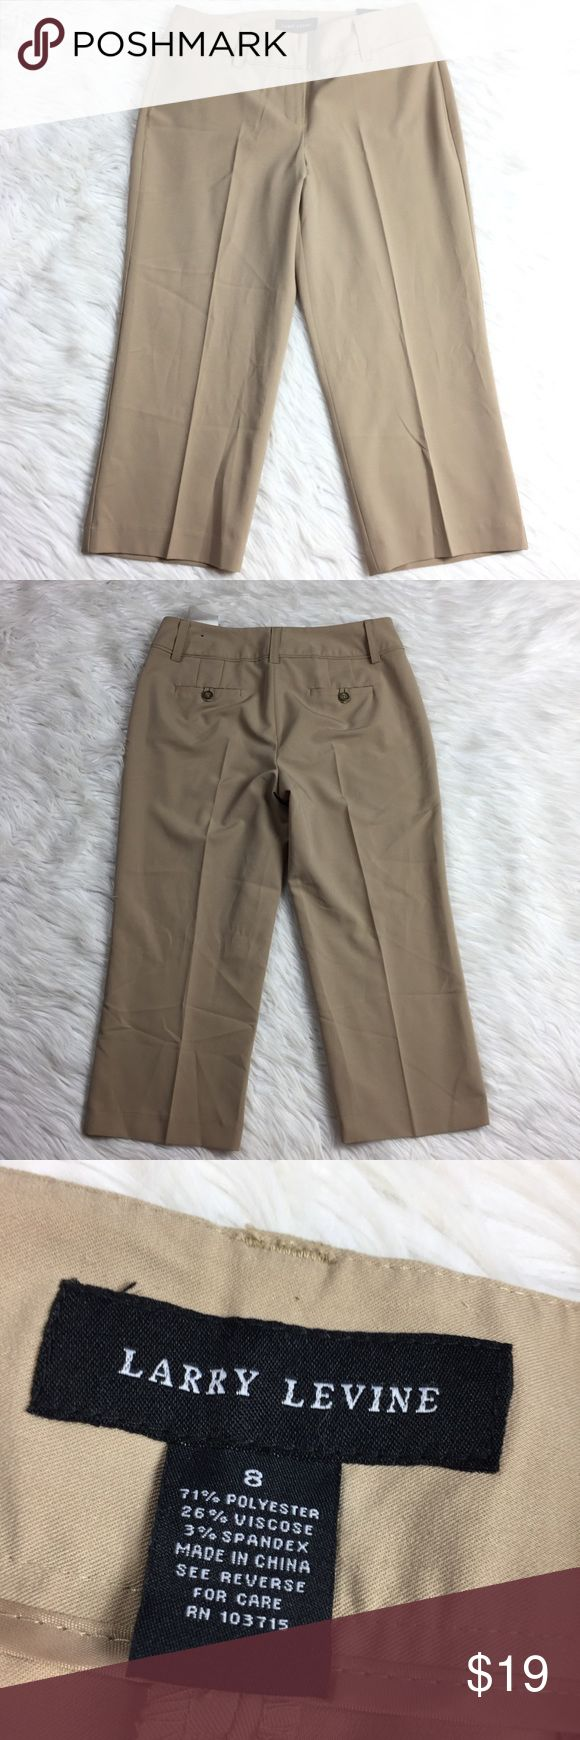 """NEW •• Larry Levine • Light Khaki Capri Pants Classic Larry Levine capris in brand new condition with all original tags attached. The color is a light tan khaki. Super cute dressed up or down. Appropriate for casual get together, as well as, dress up with a blouse for the office. Very versatile.  Measurements (approx.) Inseam: 21.5"""" Flat Lay Waist: 15""""  Comes from pet free smoke free home. (LLR2-0542) Larry Levine Pants Capris"""